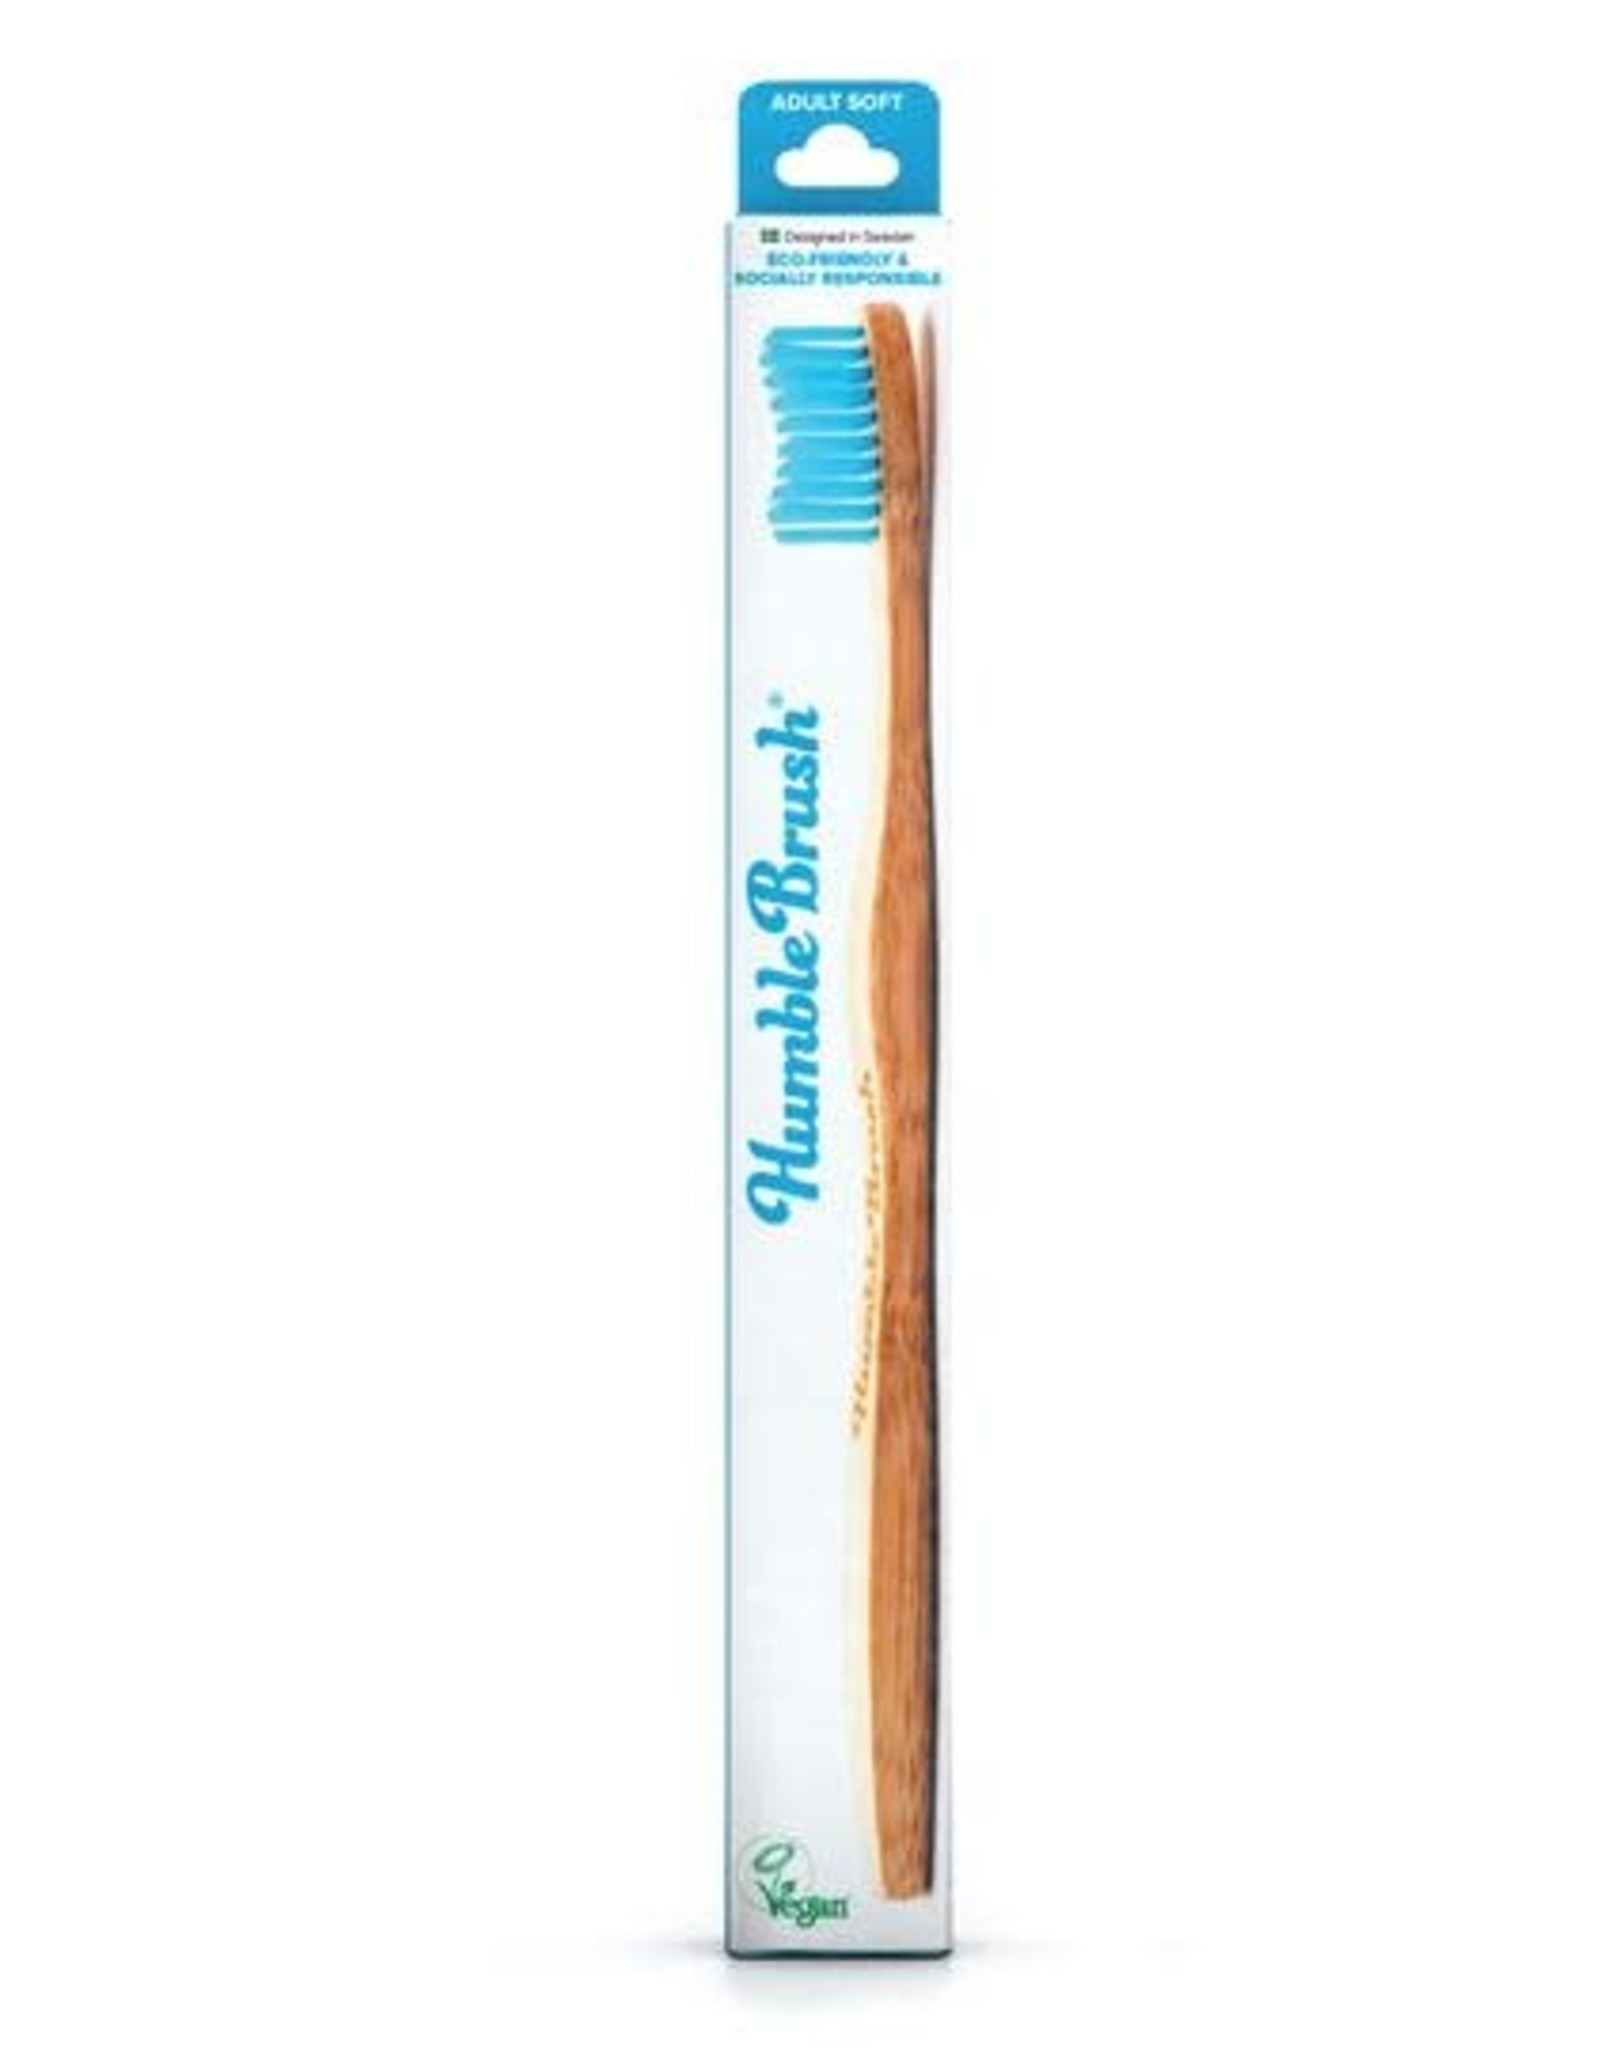 The Humble Co. Humble Brush Toothbrush Blue Ultra Soft